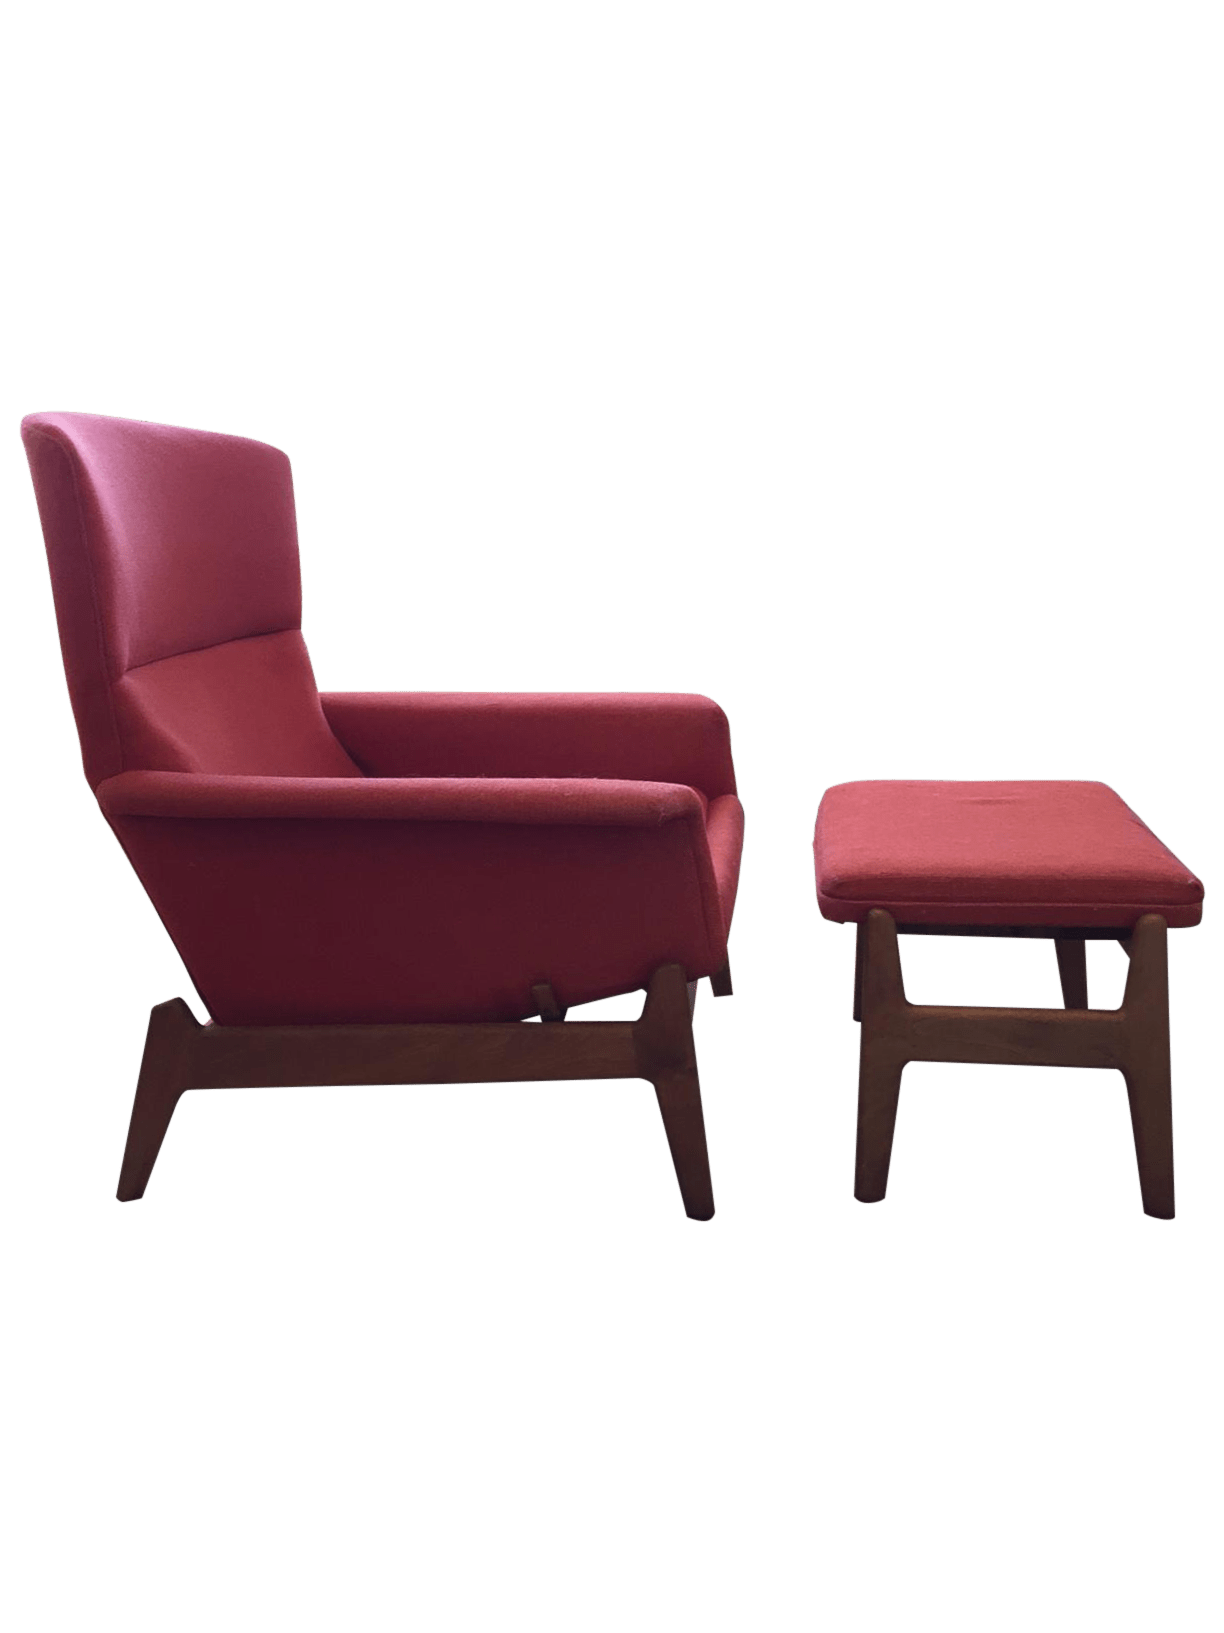 Mid Century Chair And Ottoman Dux Mid Century Reclining Lounge Chair And Ottoman Chairish